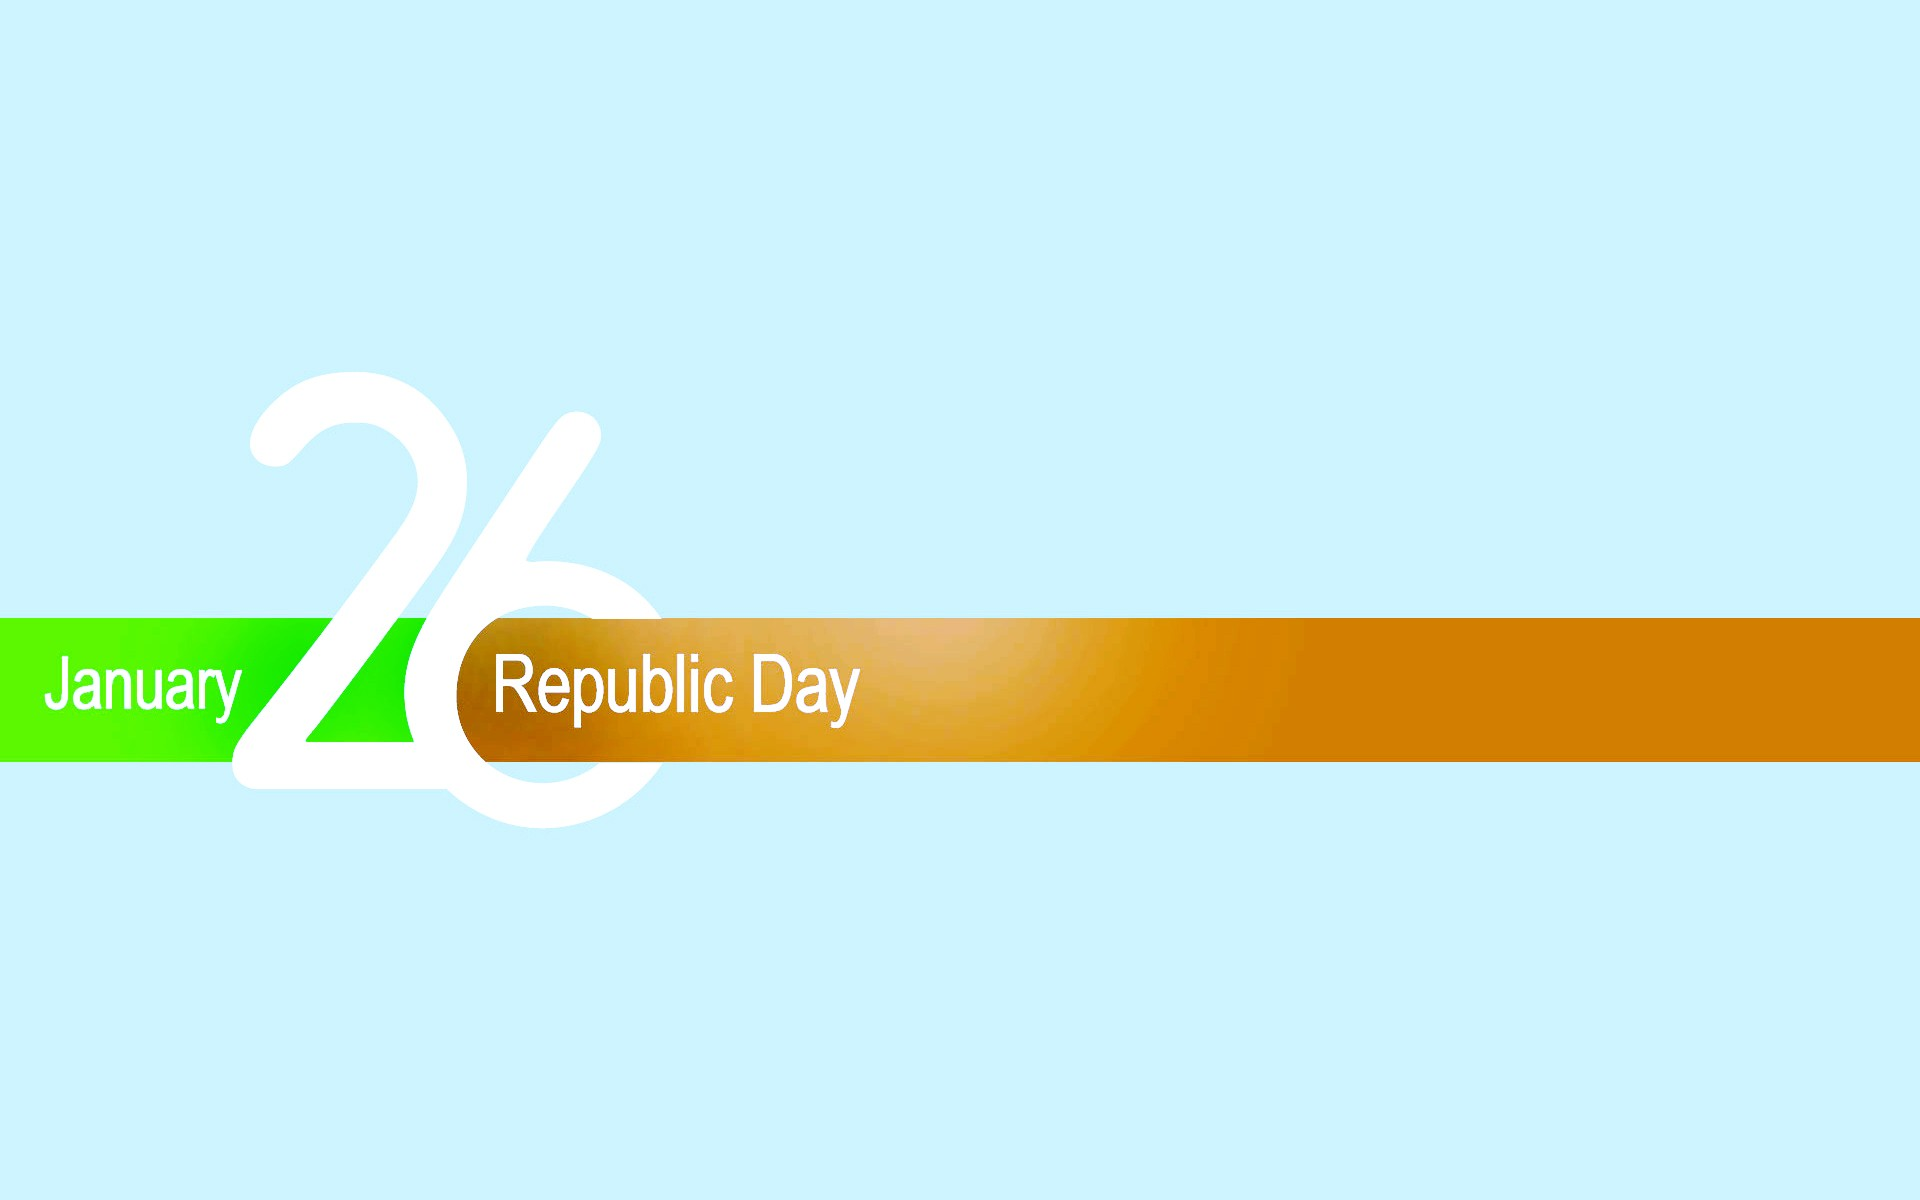 India Best Republic Day hd Images and Wallpapers free download